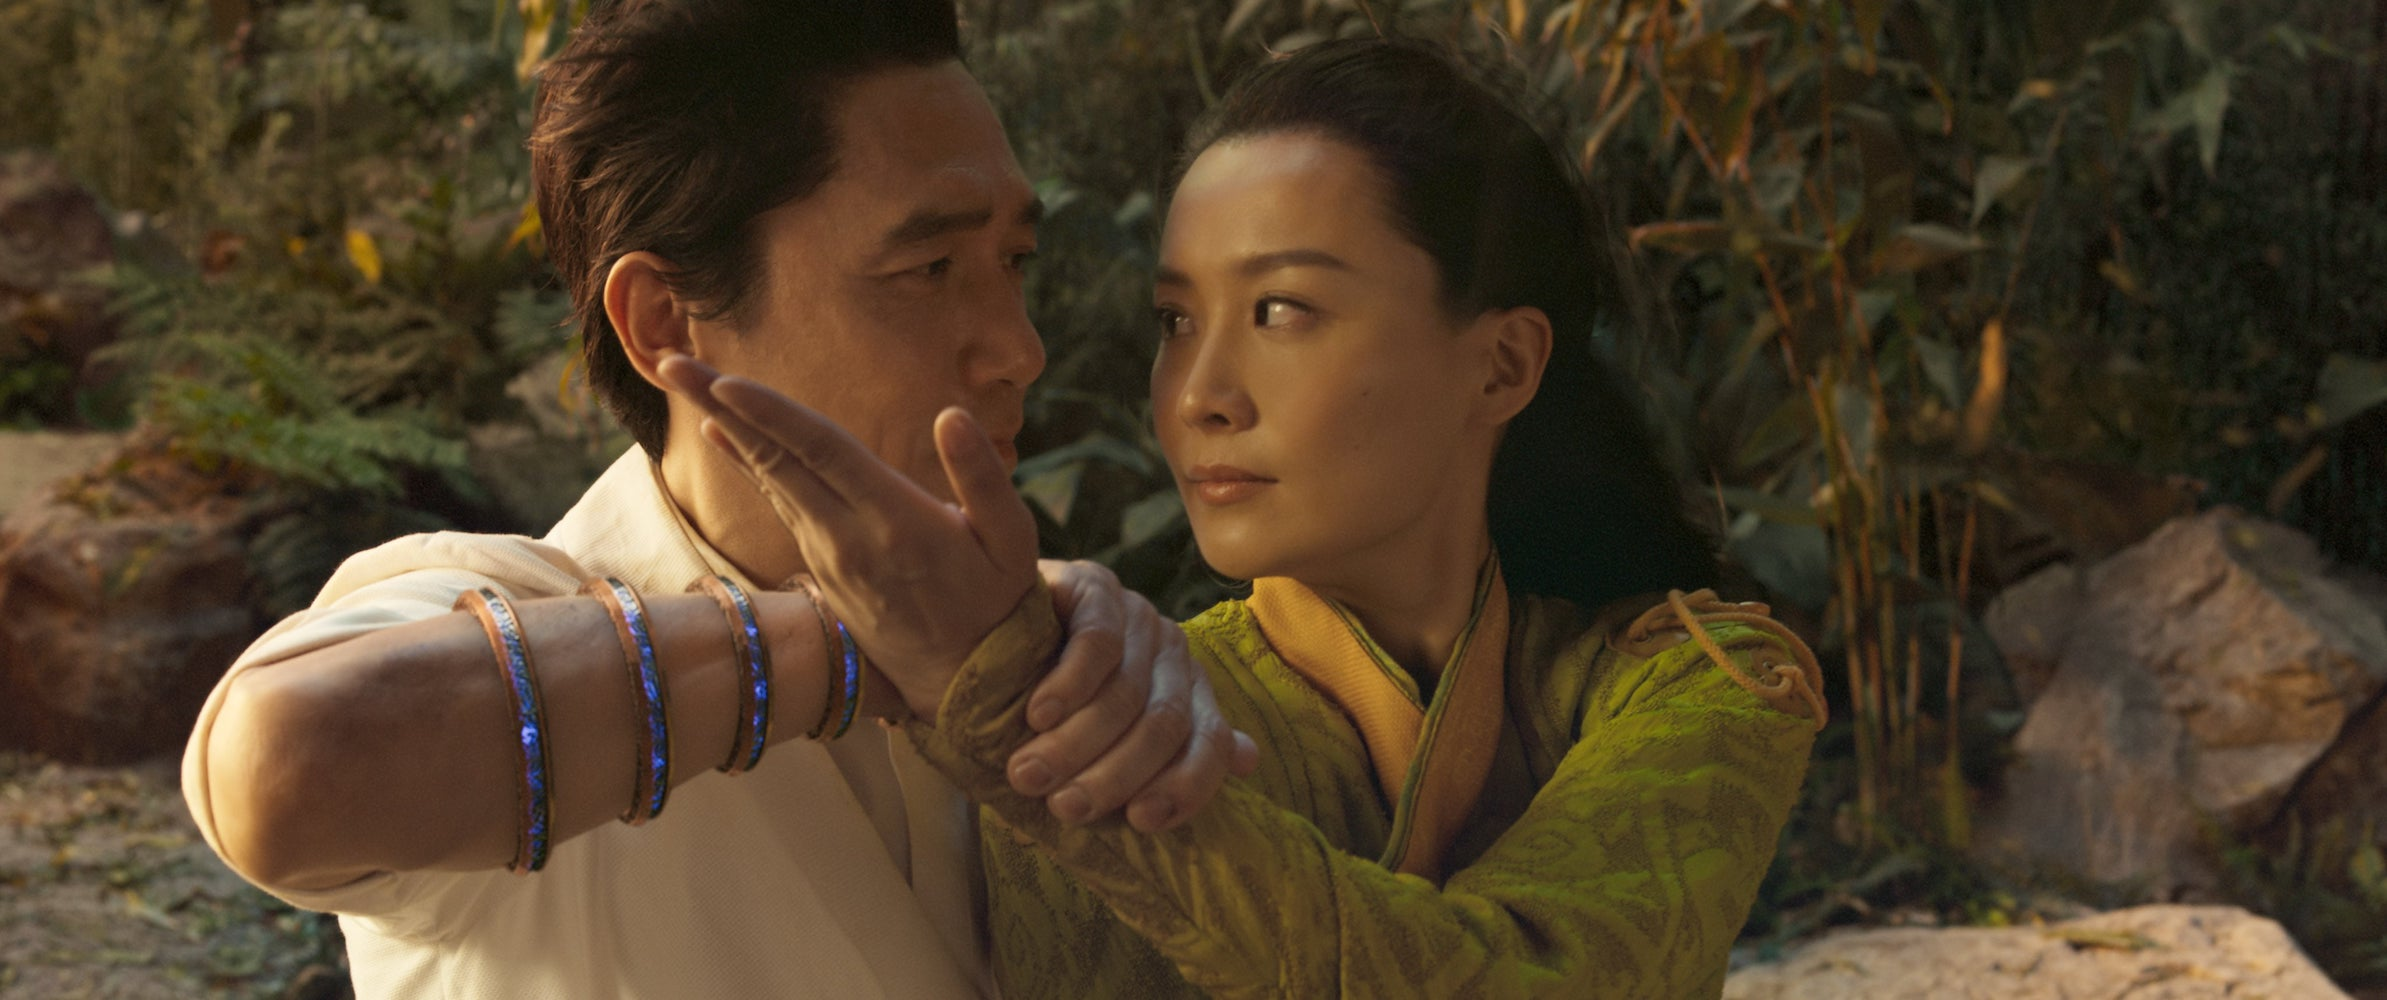 (L-R): Wenwu (Tony Leung) and Ying Li (Fala Chen) in Marvel Studios' SHANG-CHI AND THE LEGEND OF THE TEN RINGS. Photo courtesy of Marvel Studios. ©Marvel Studios 2021. All Rights Reserved.